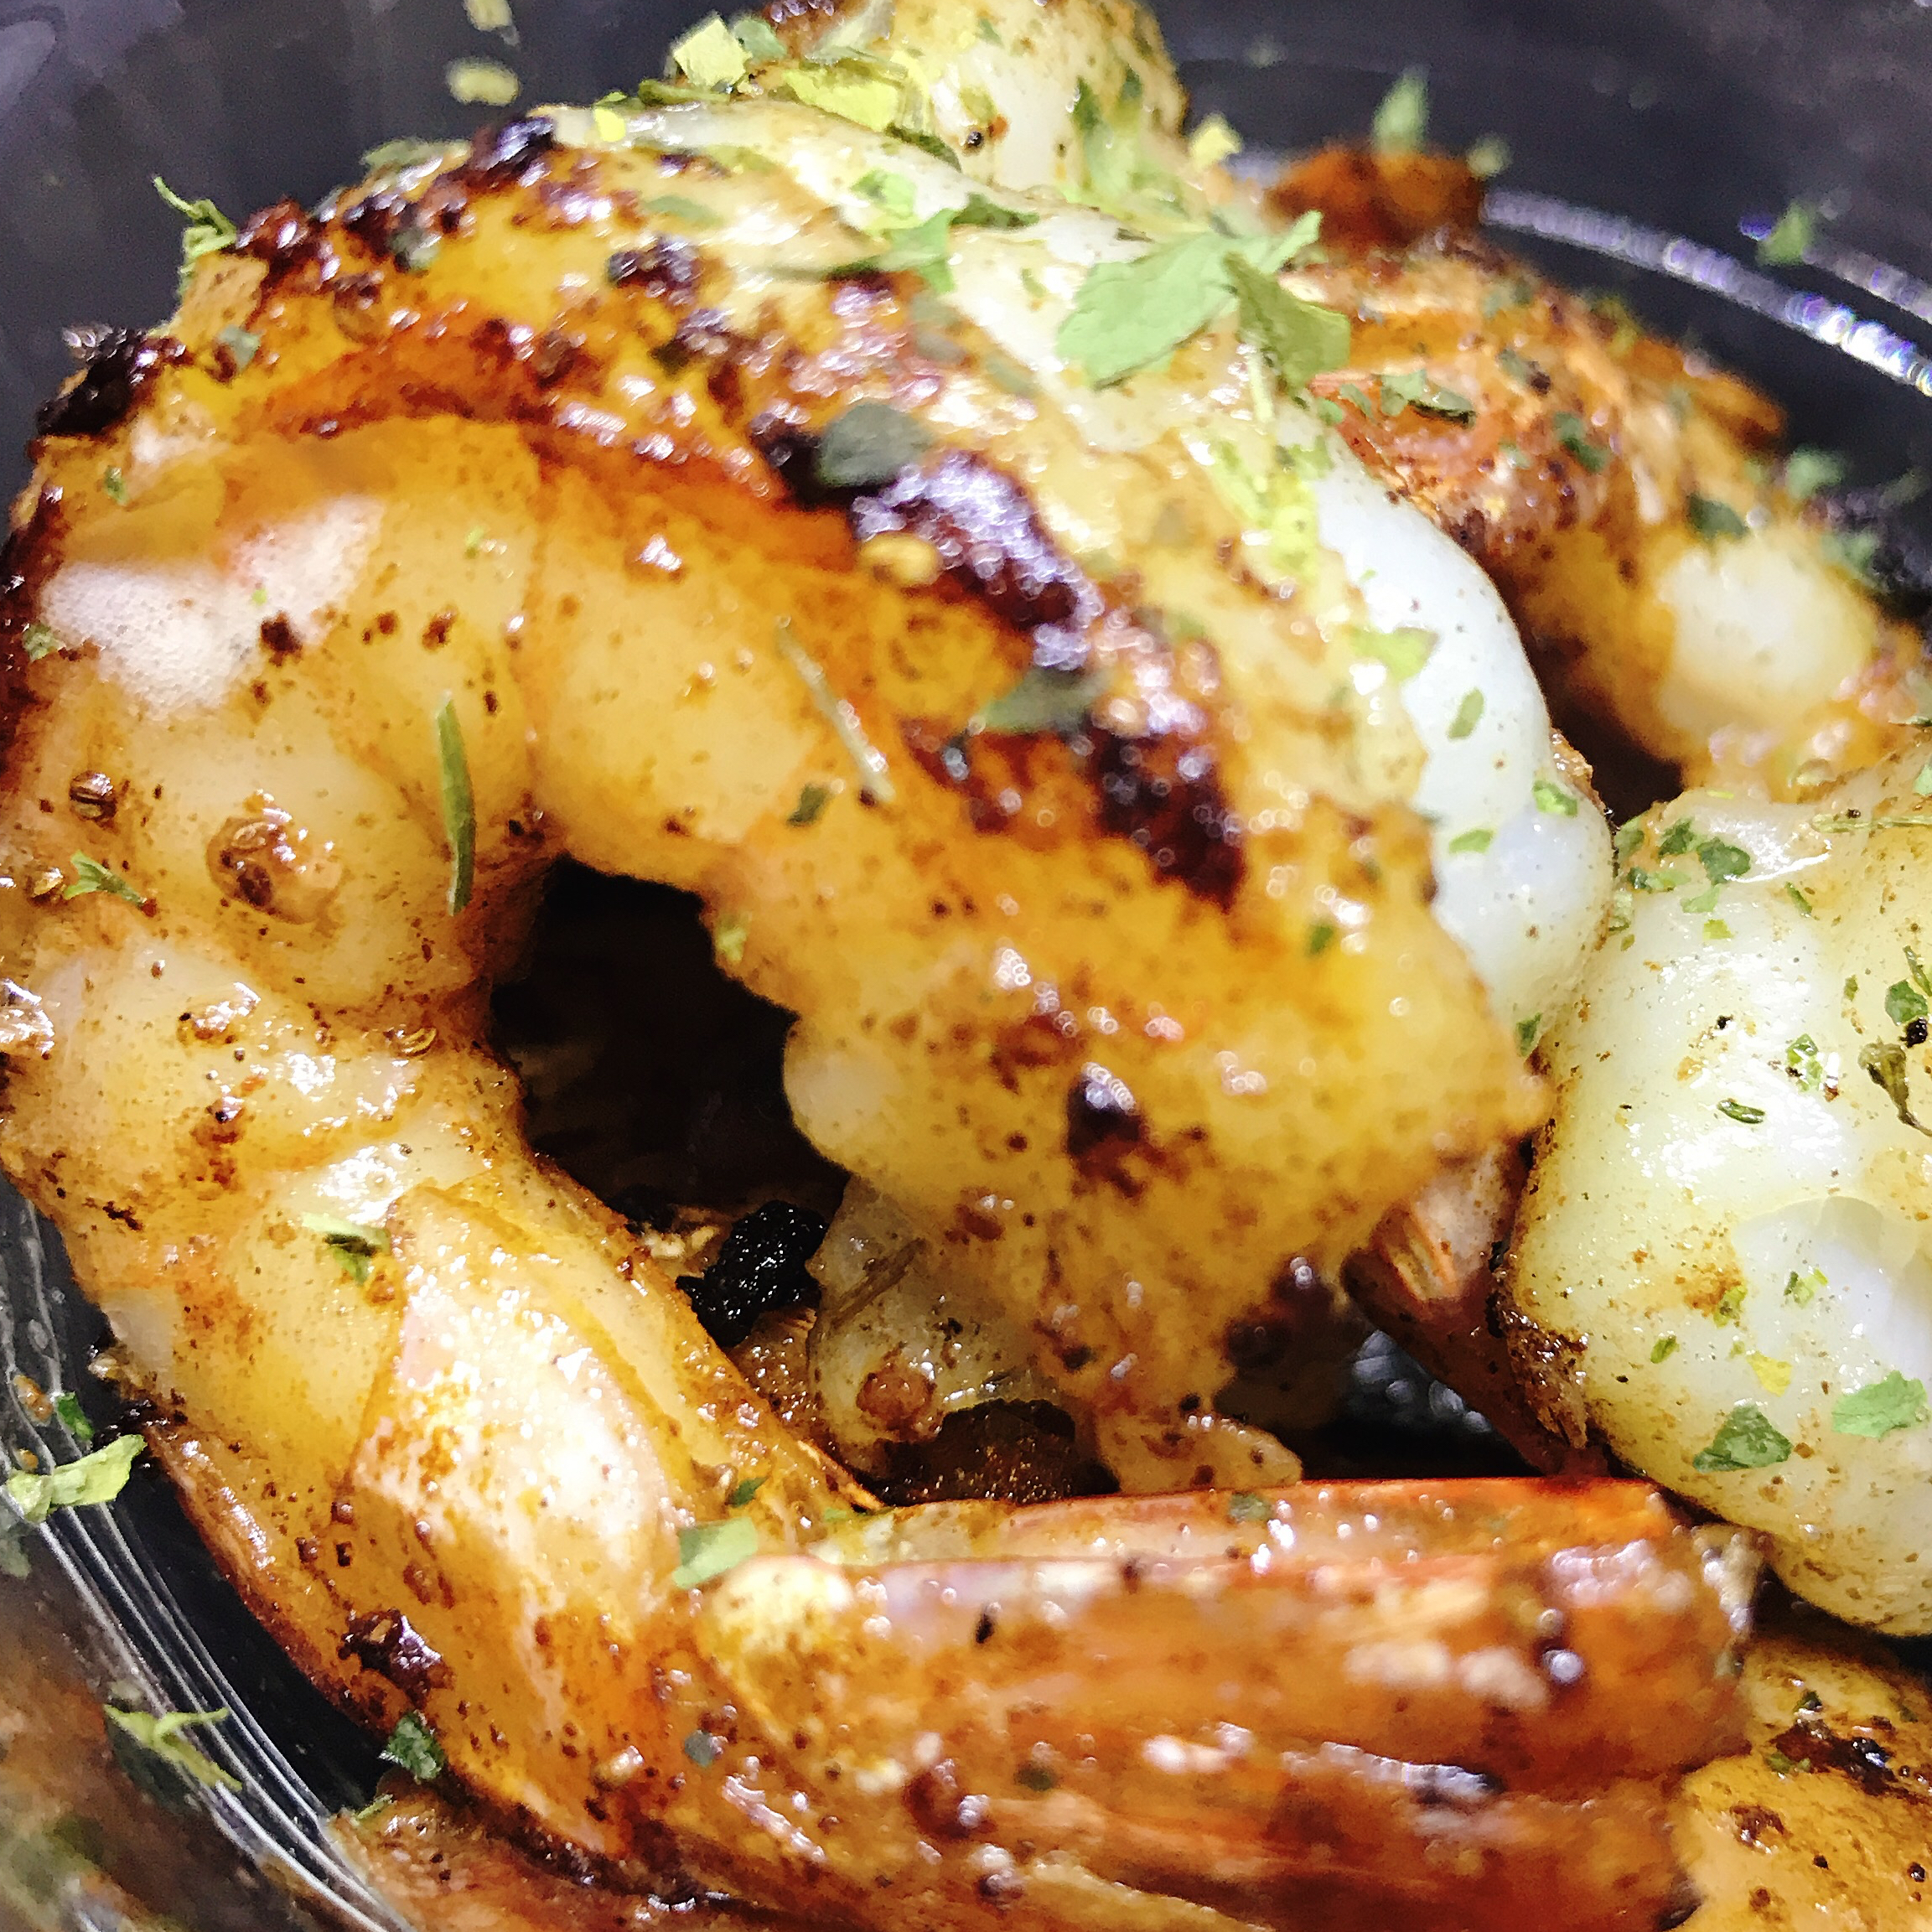 Tangy Lemon-Garlic Shrimp